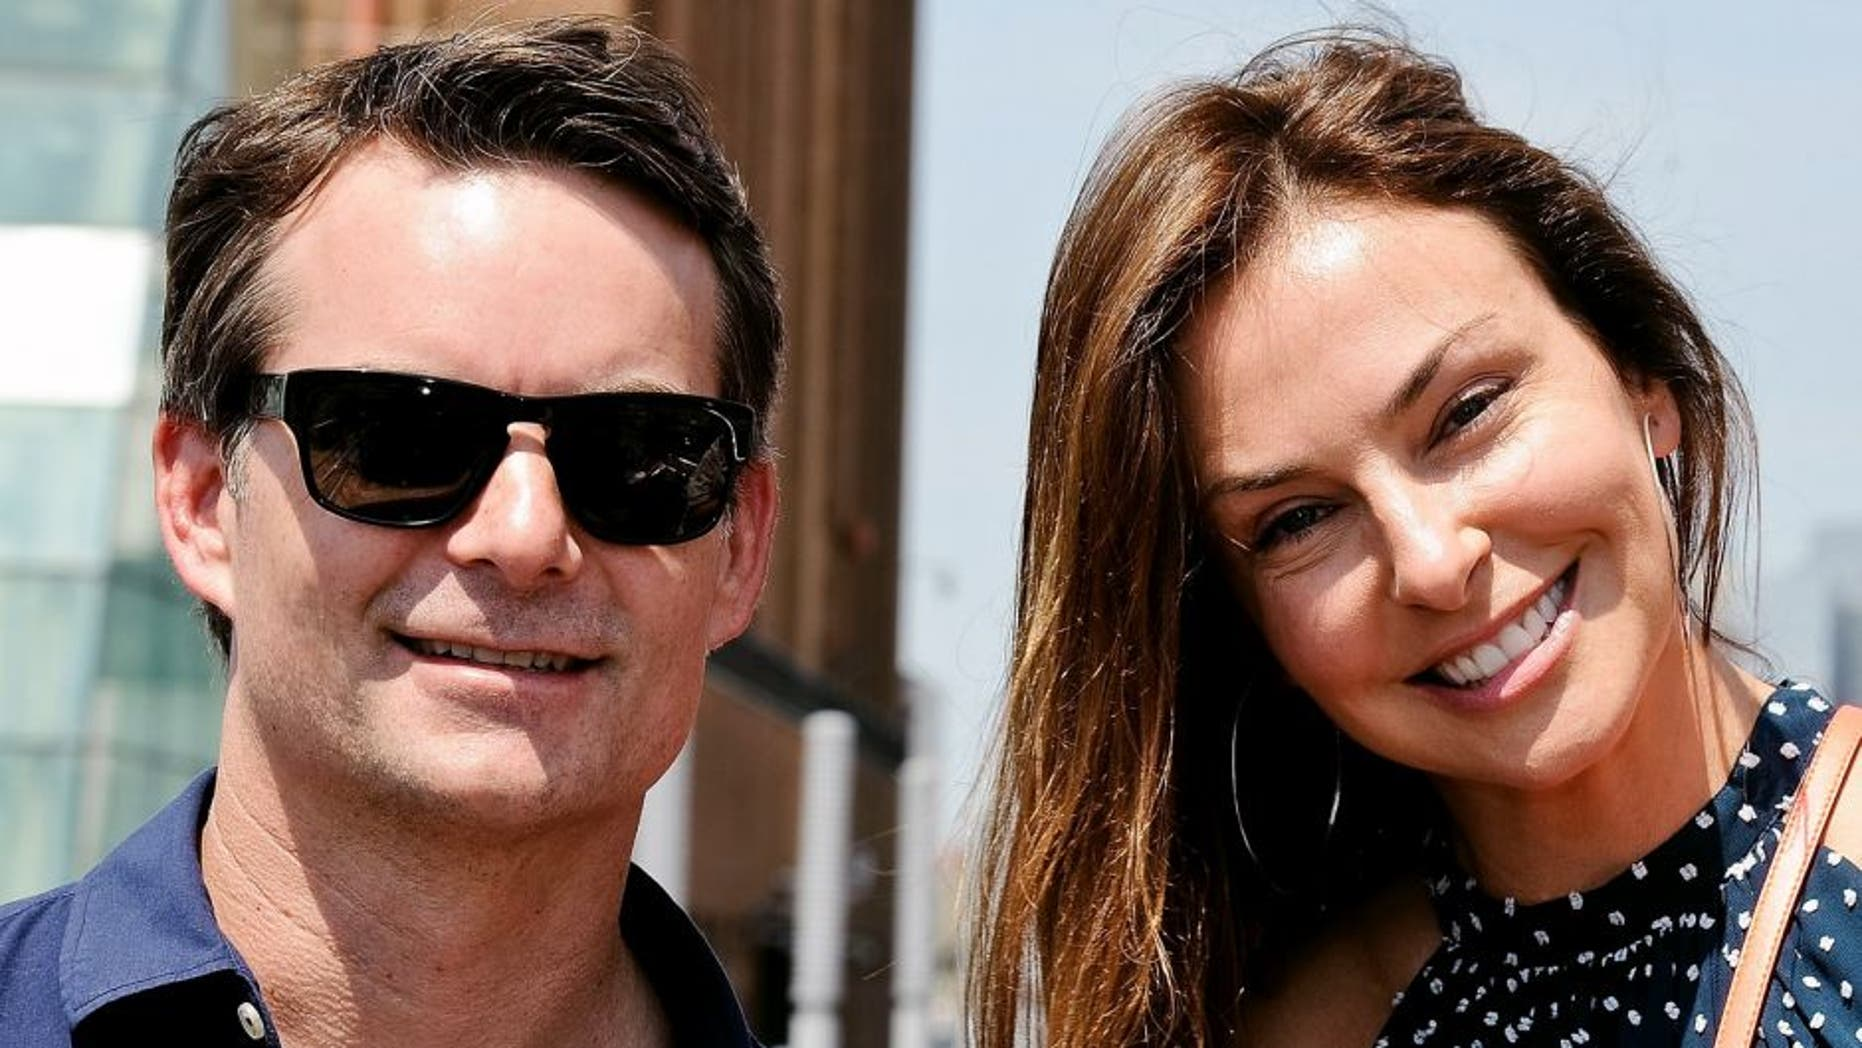 NEW YORK, NY - JUNE 30: Race Car Driver Jeff Gordon with wife Ingrid Vandebosch pose during Jeff Gordon Honored By Ride Of Fame at Pier 78 on June 30, 2015 in New York City. (Photo by Daniel Zuchnik/WireImage)